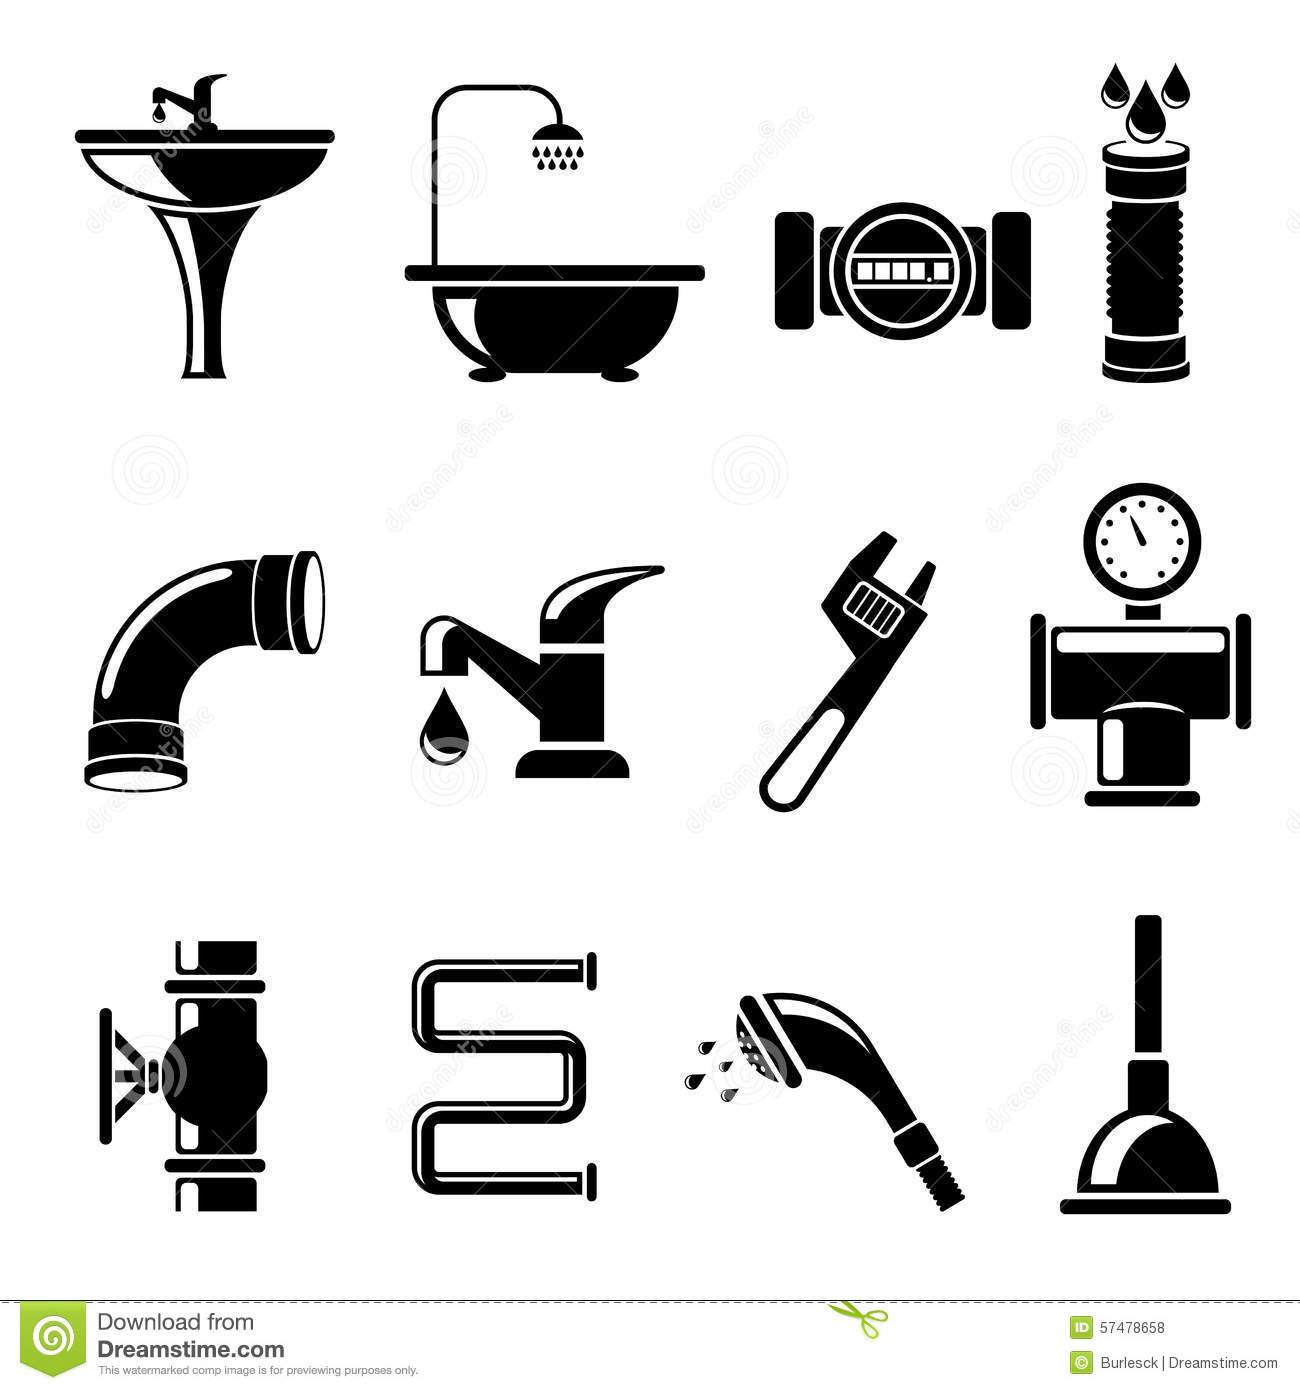 plumbing icons stock vector  illustration of construction